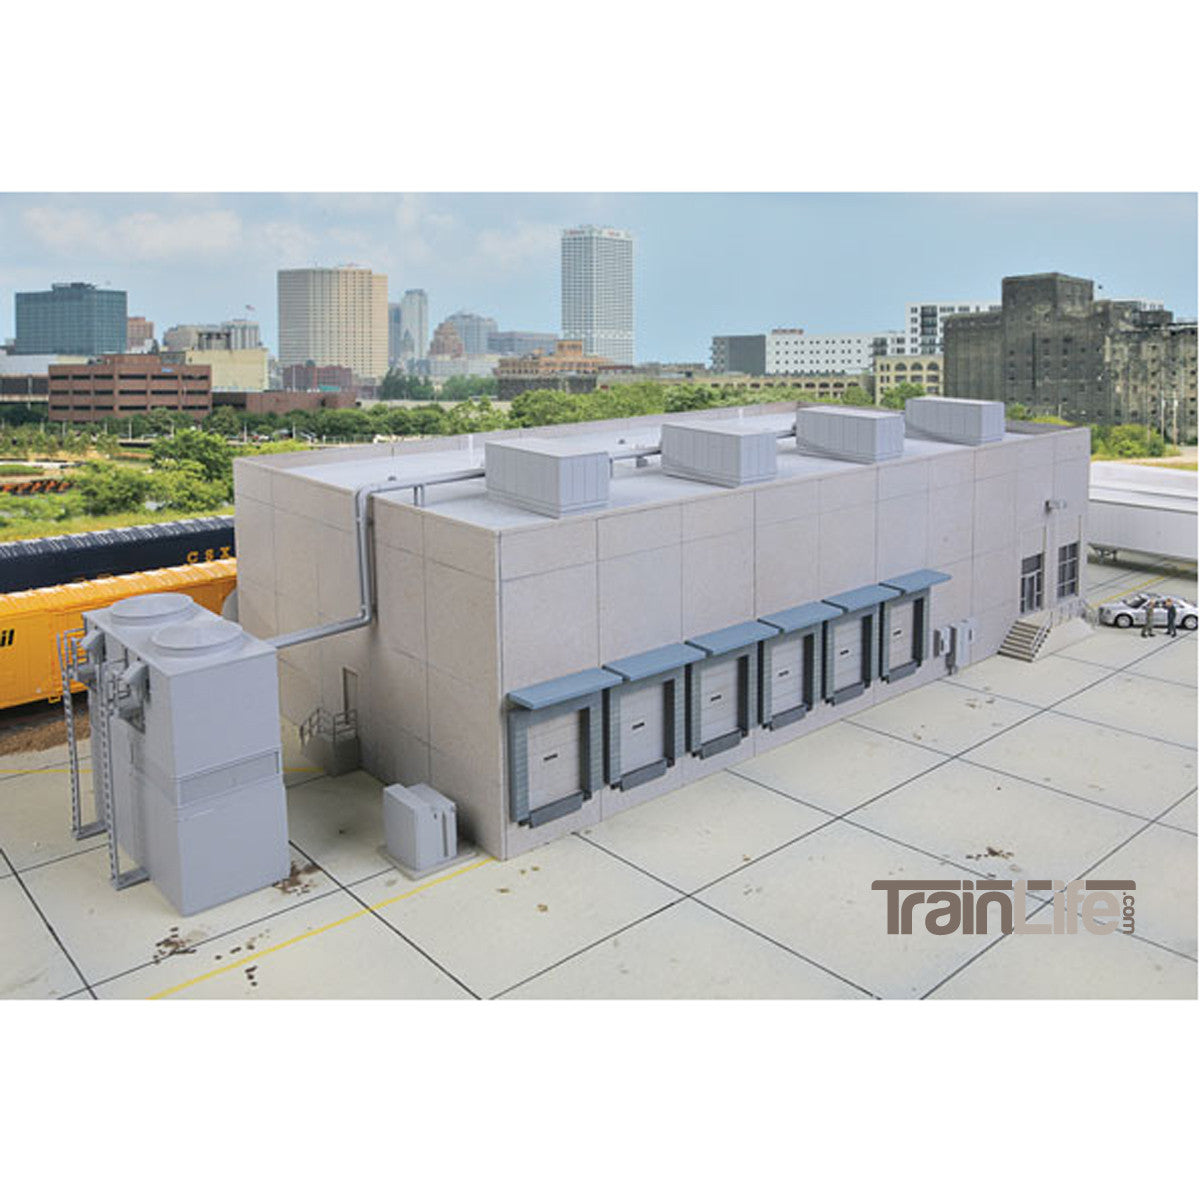 Warehouse Modern Design For Water Tank on warehouse crane, warehouse lights, warehouse heating, warehouse fan, warehouse garage, warehouse home, warehouse storage, warehouse roof,